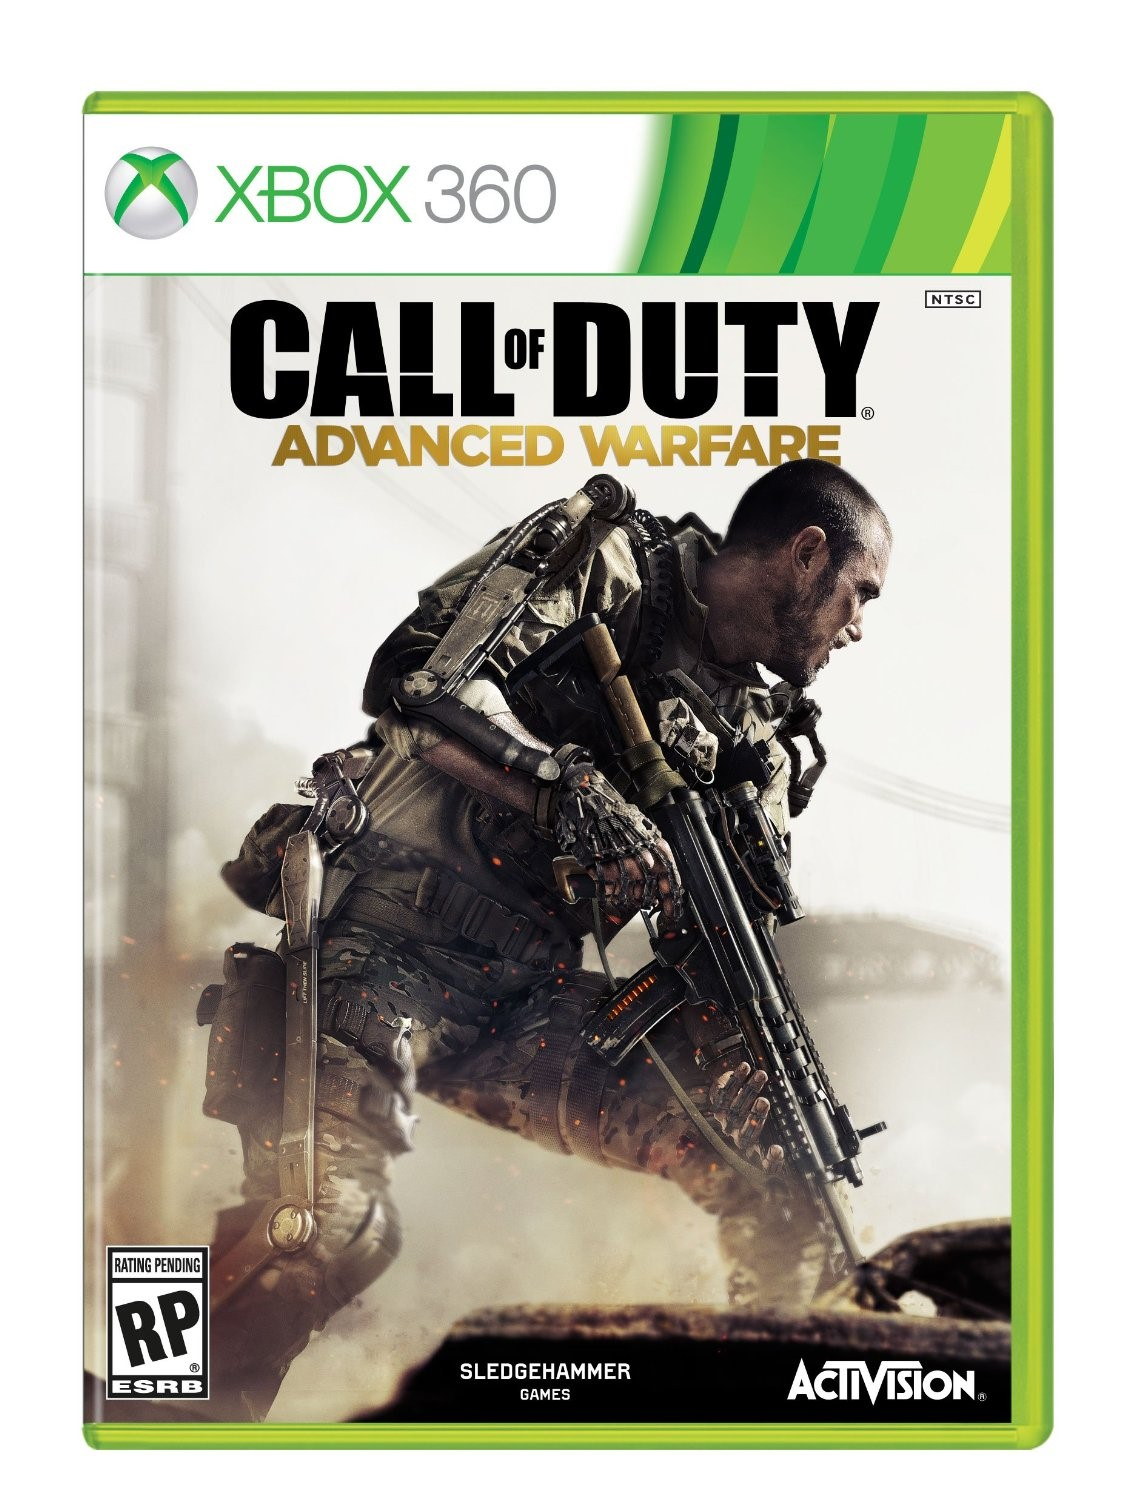 MICROSOFT Microsoft XBOX 360 Game GAME CALL OF DUTY ADVANCED WARFARE